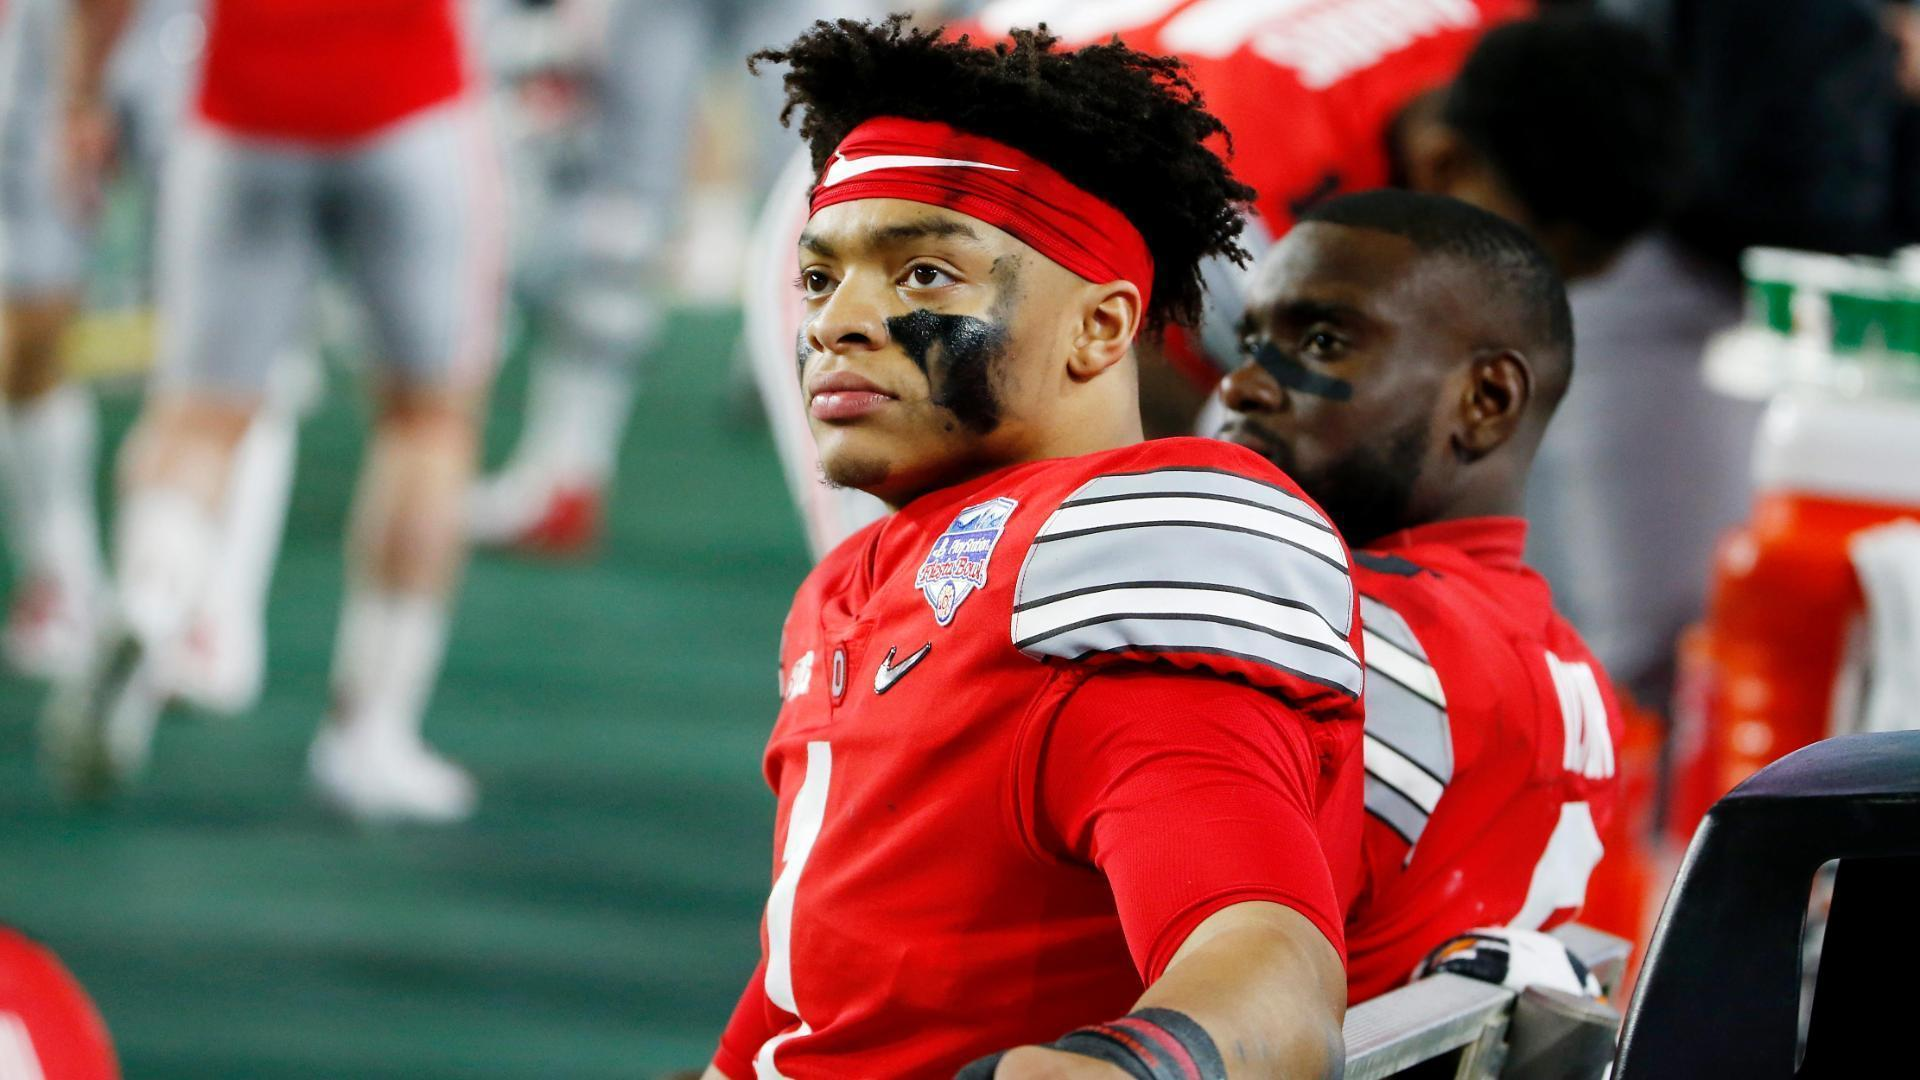 OSU's Fields continues fight for Big Ten season